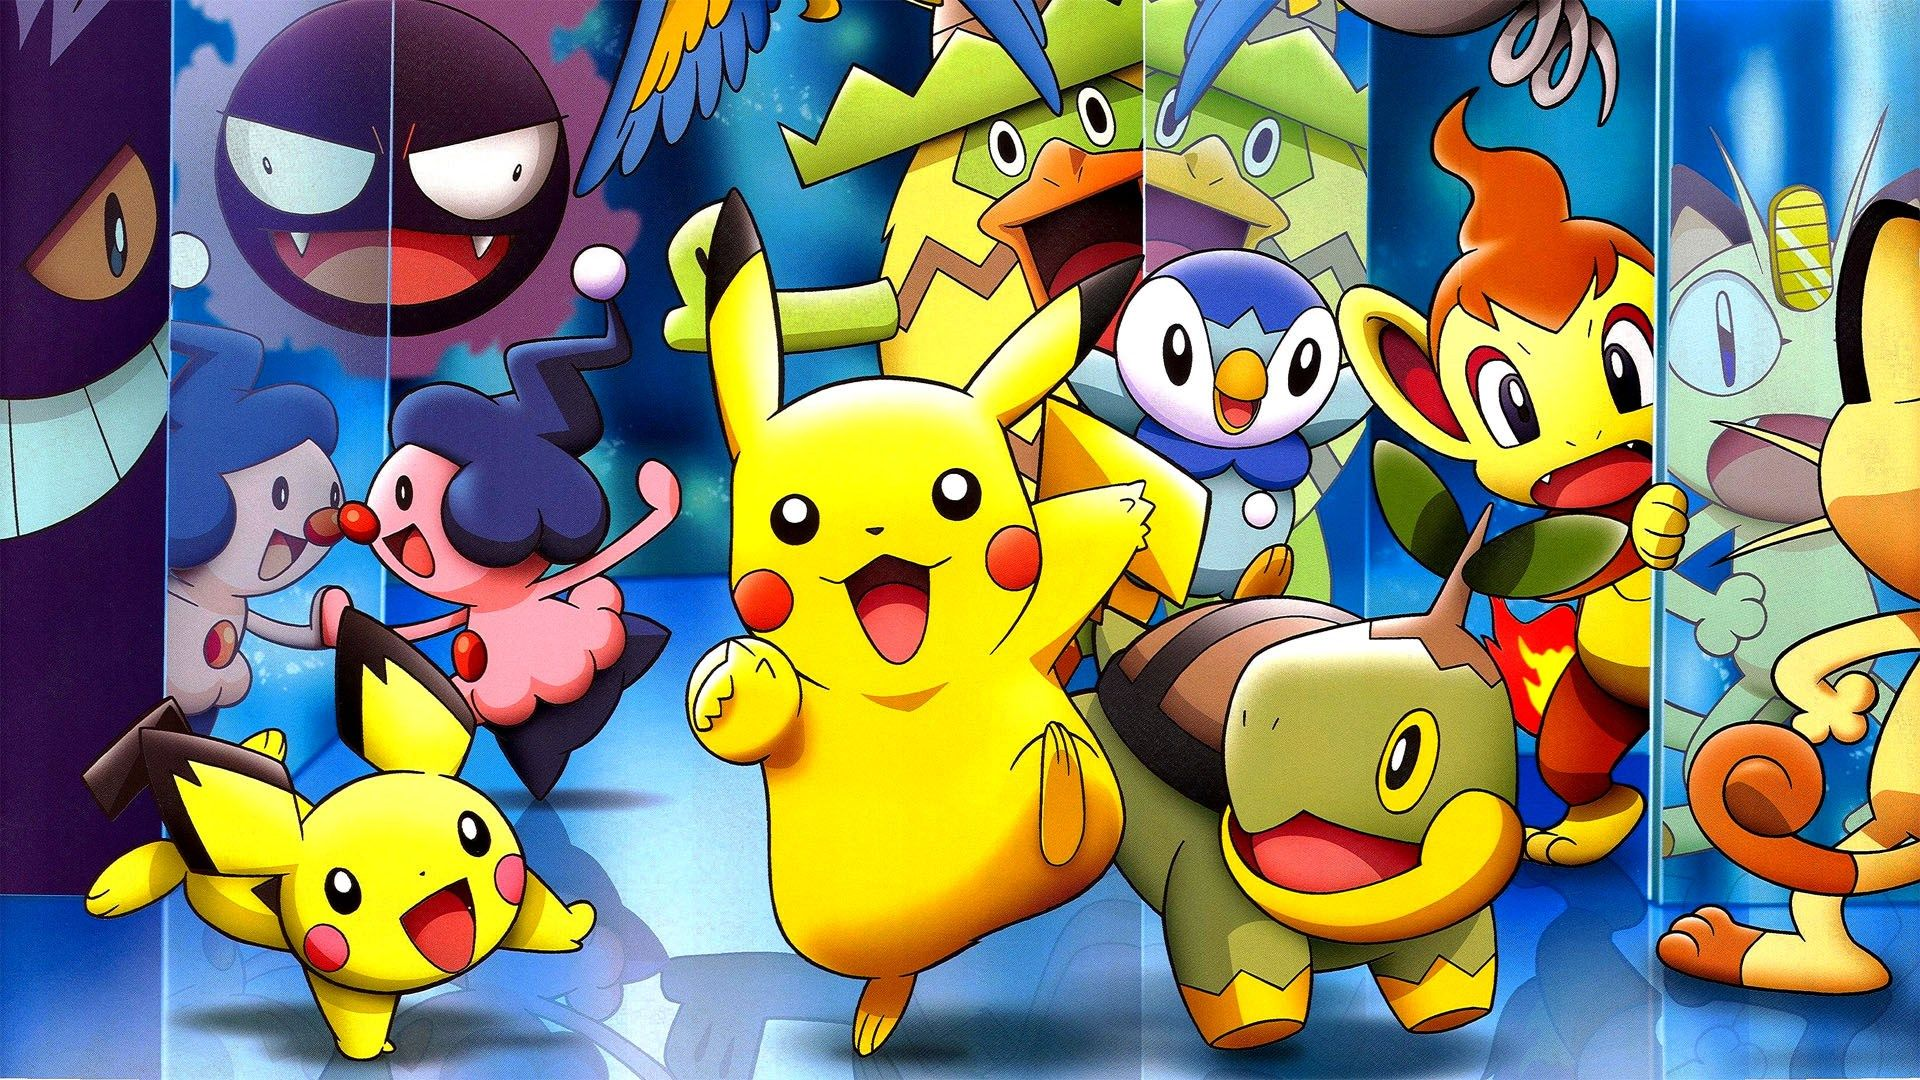 Cute Pokemon Wallpaper Full Hd